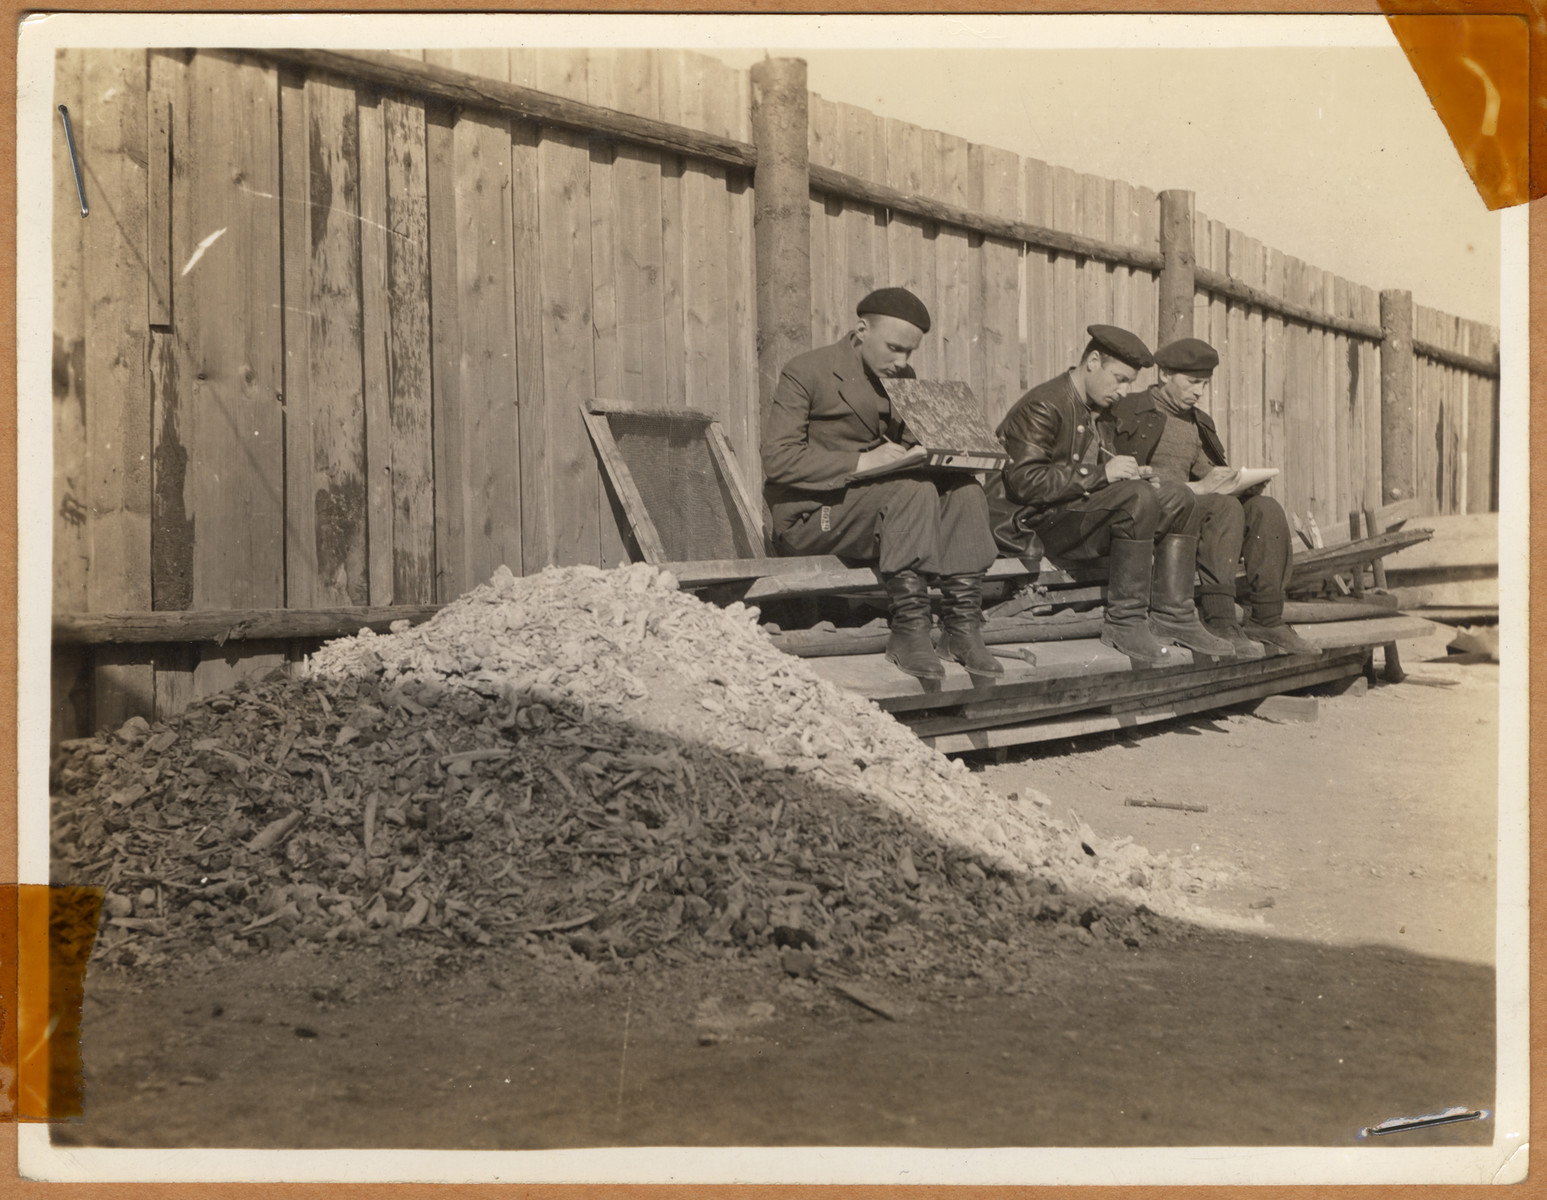 "Survivors sitting next to a pile of human remains shoveled from the crematorium in Buchenwald.  The lender's handwritten caption reads, ""Men writing home, that they are now free.  Beside them, the bones of their comrades. One letter was allowed a month.  Many months the guards would enter the barracks with the mail and say, 'You Swine, you don't need the mail,' then throw it in the fire."""